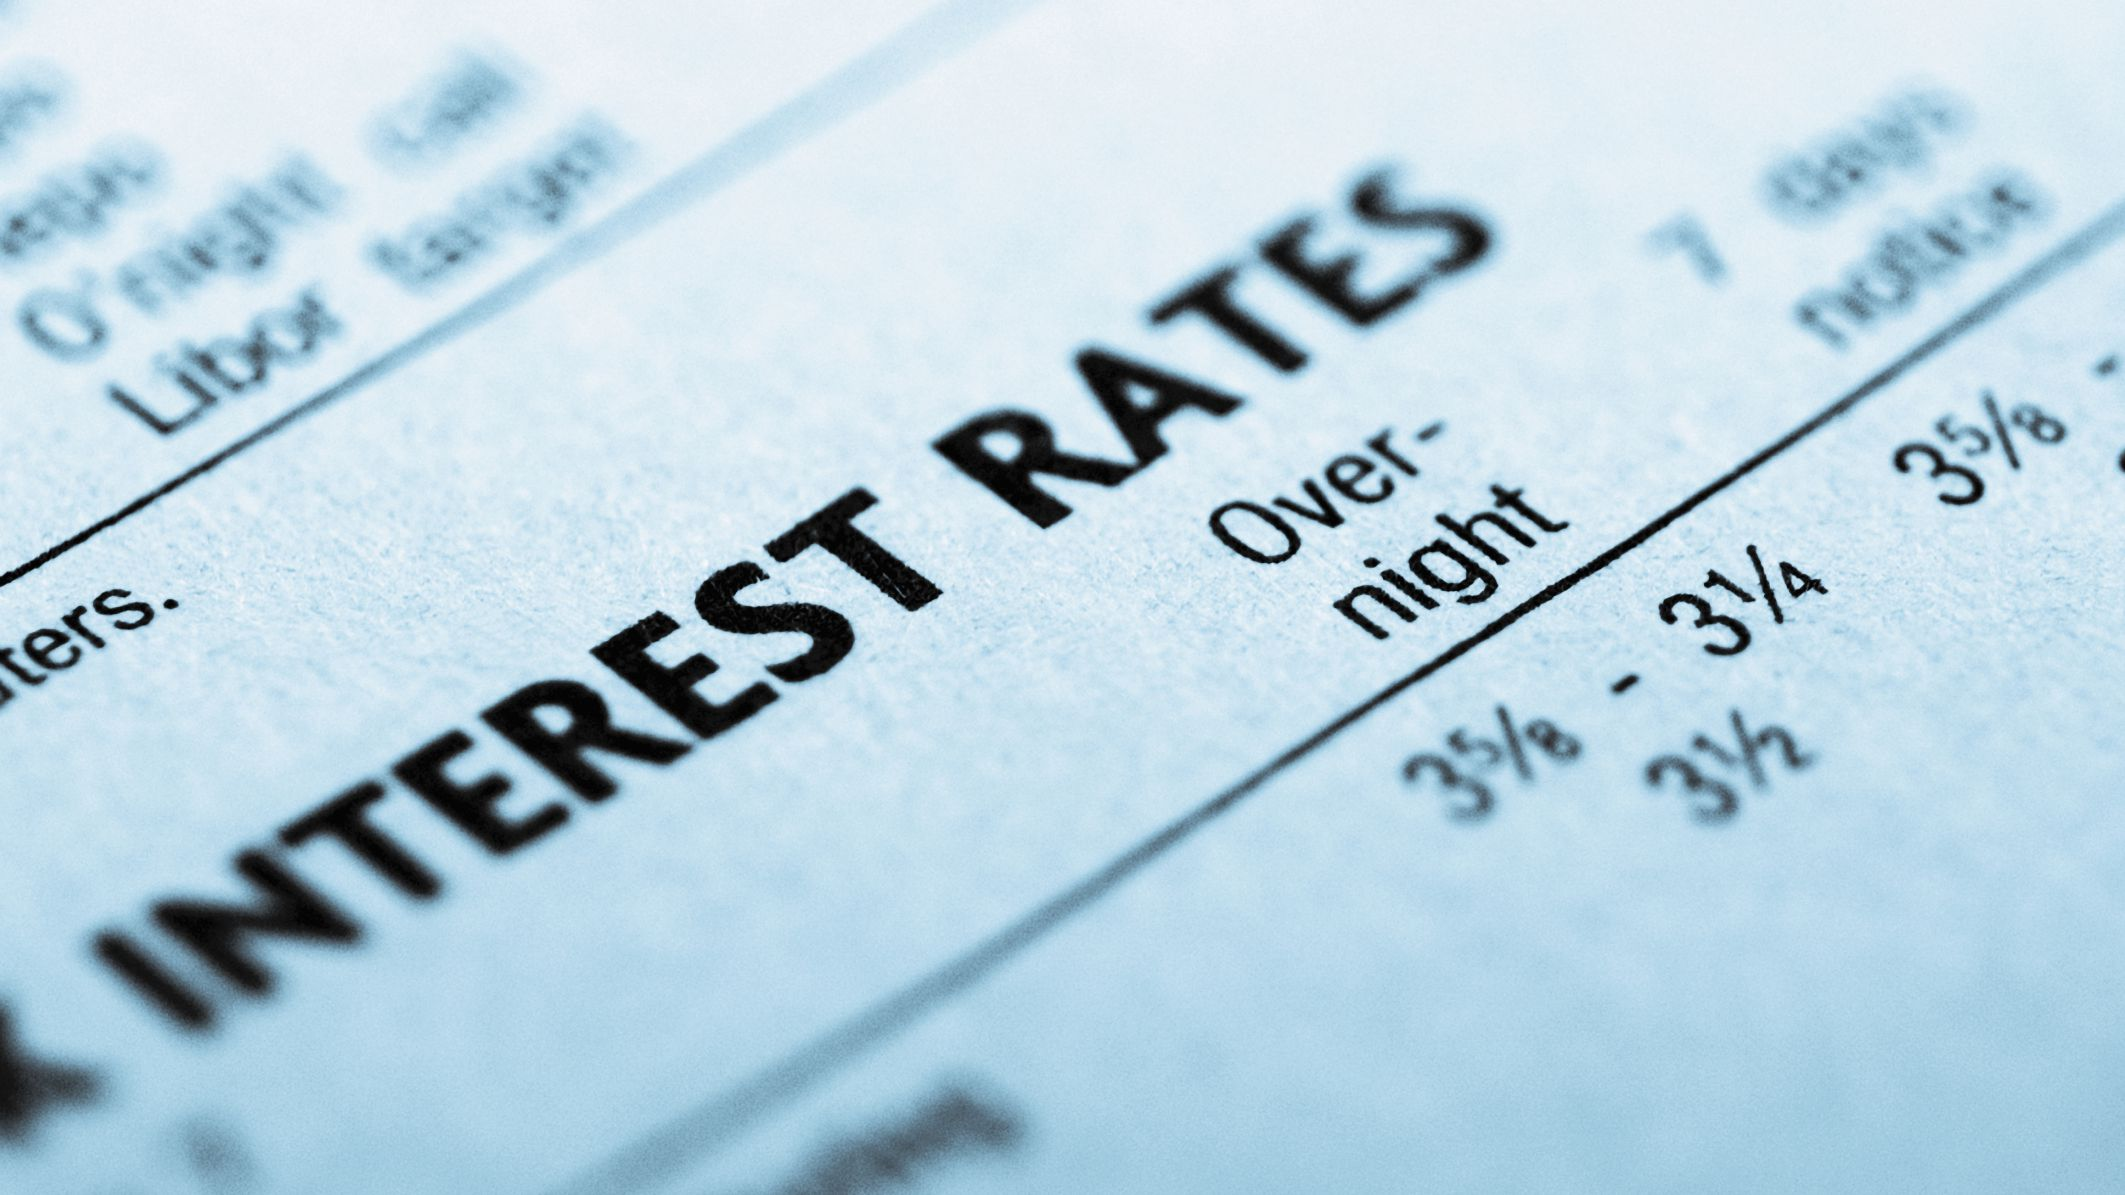 Best bond investments for rising interest rates forex commander review